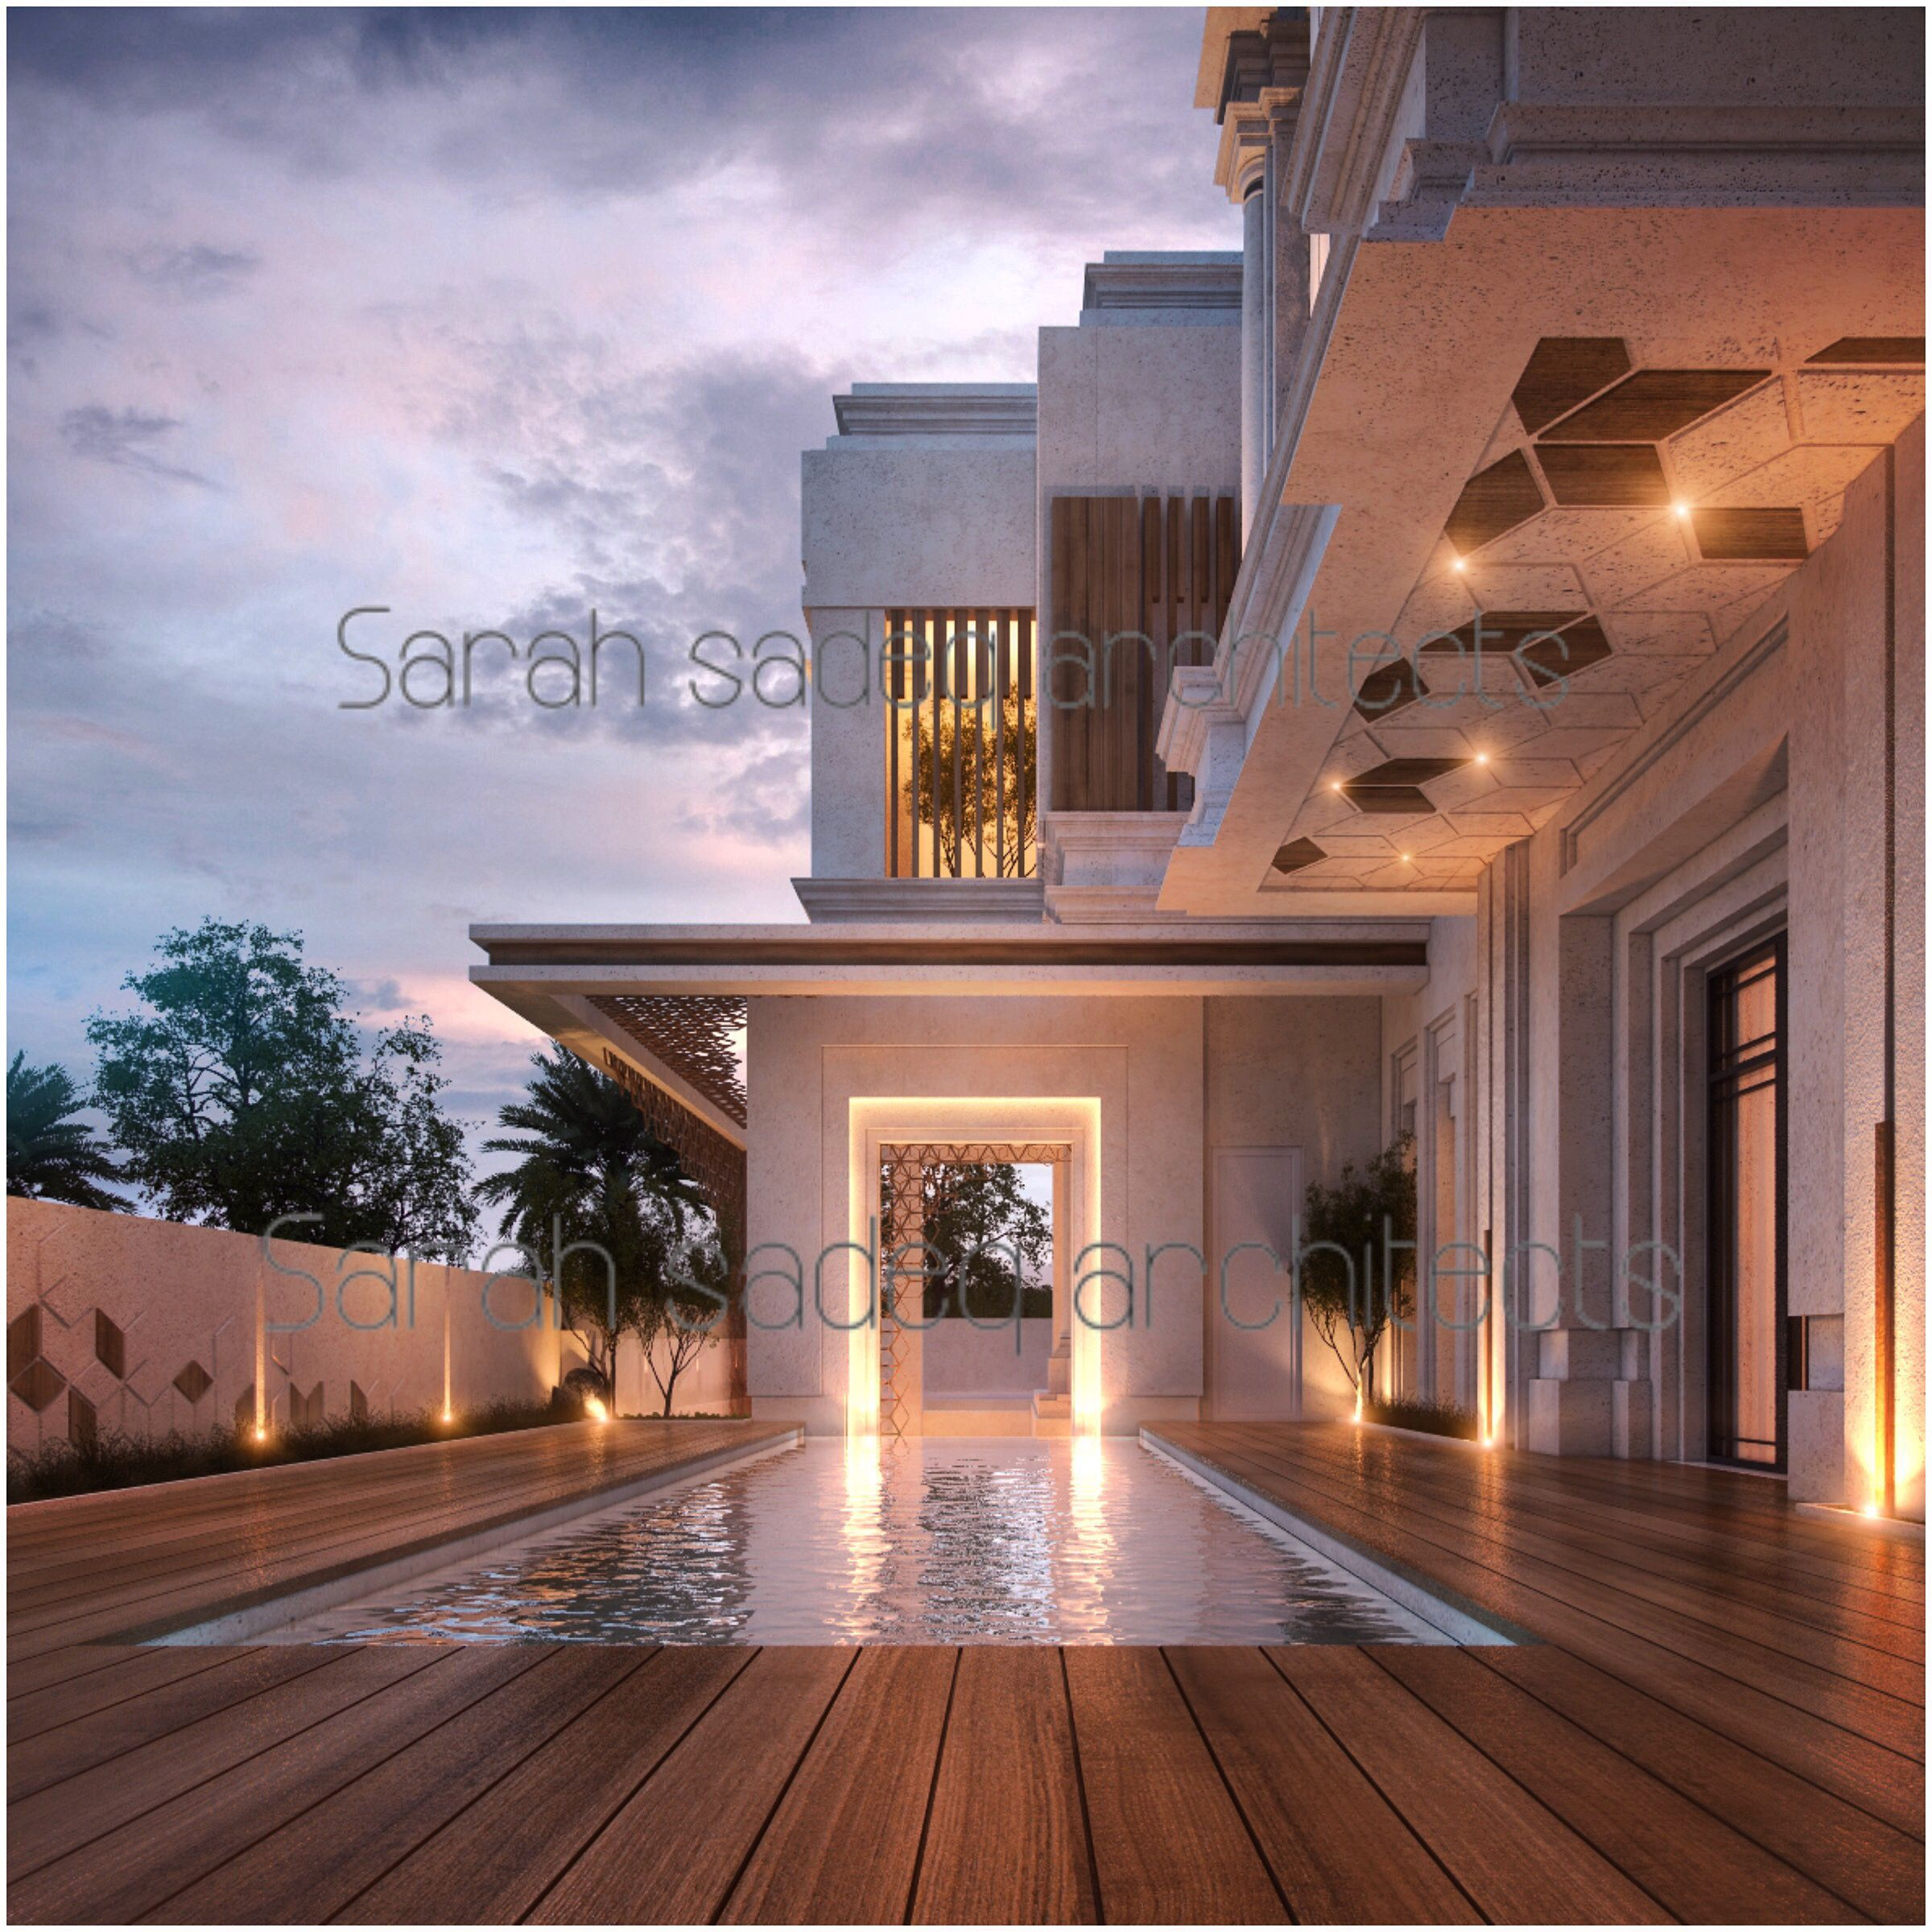 How To Create Modern House Exterior And Interior Design In: Soon In Uae By Sarah Sadeq Architects Dubai